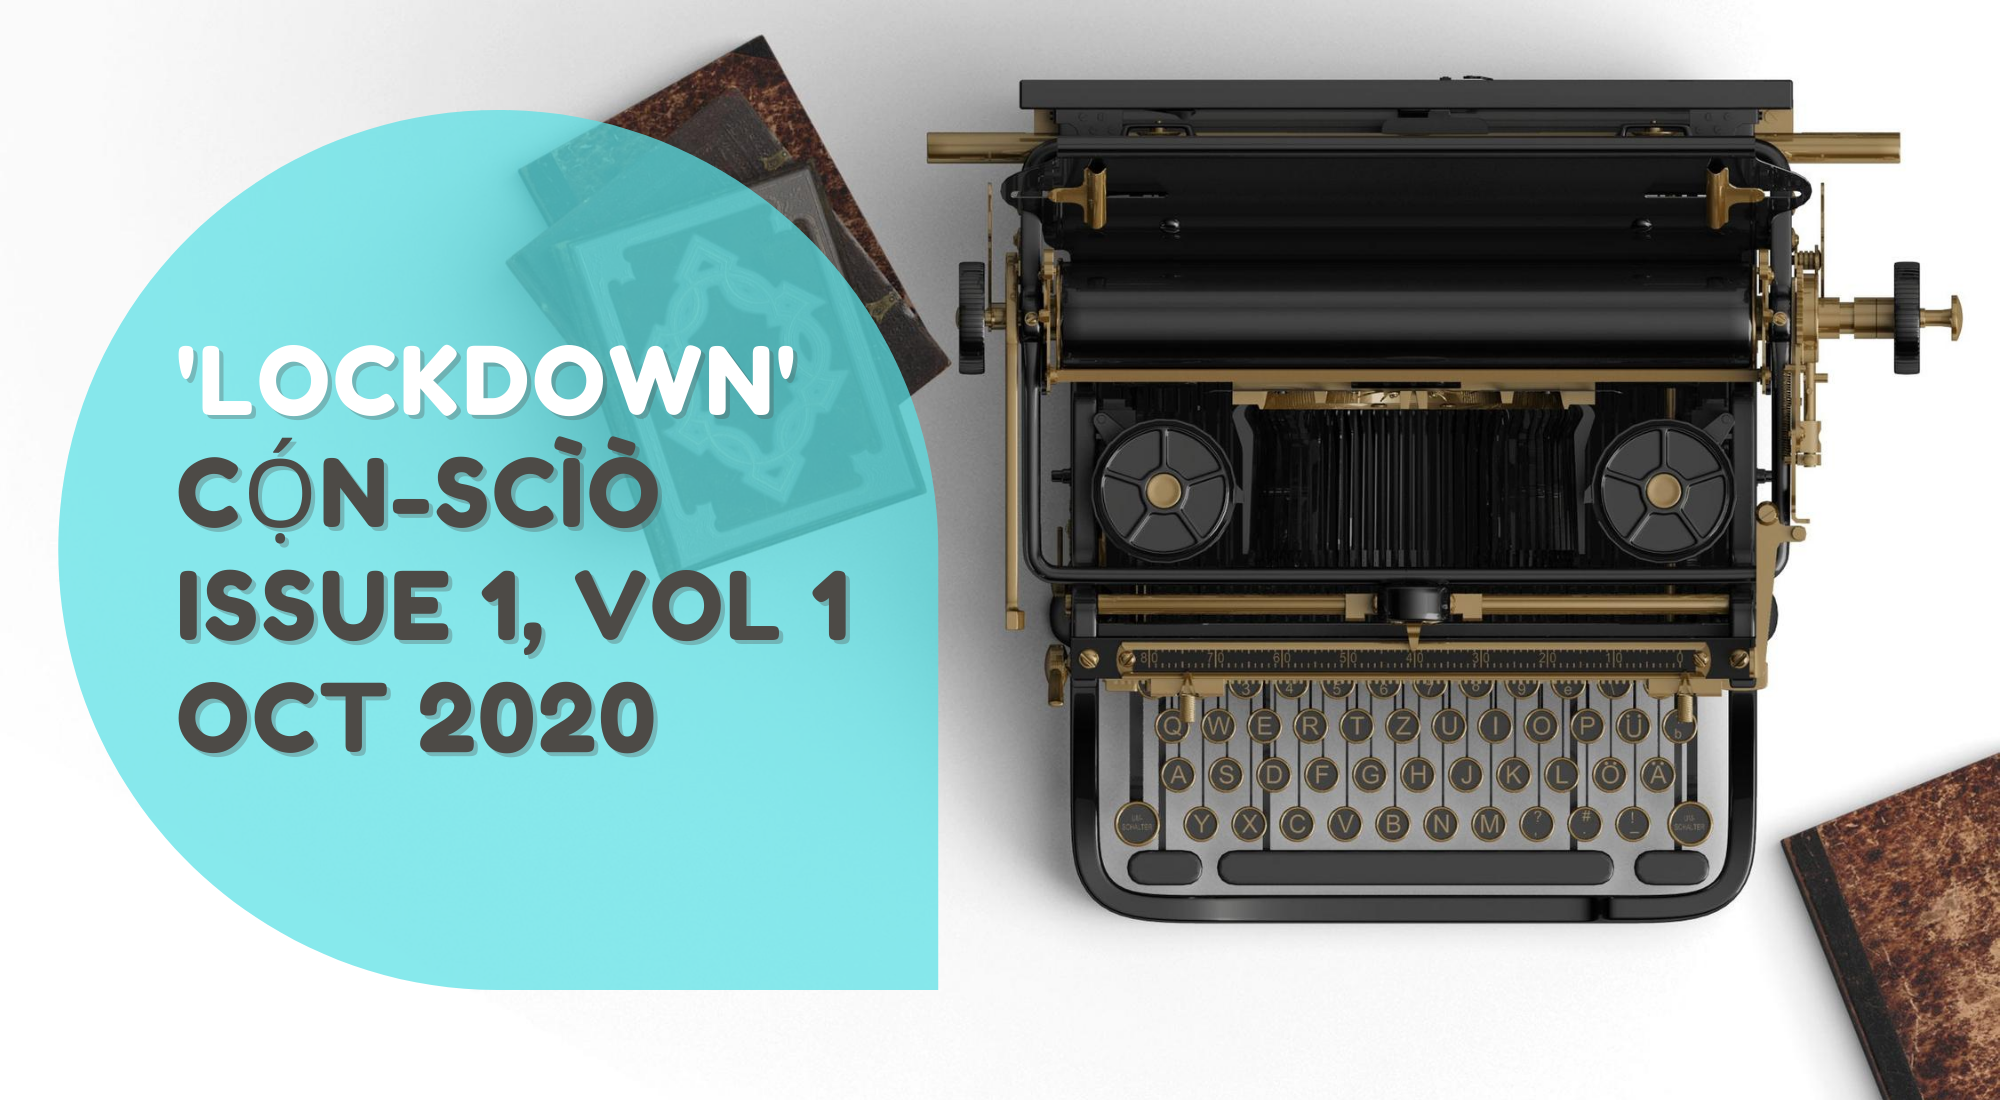 CALL FOR SUBMISSIONS: 'THE LOCKDOWN' — CỌ́N-SCÌÒ MAGAZINE ISSUE 1, VOL 1, OCT 2020